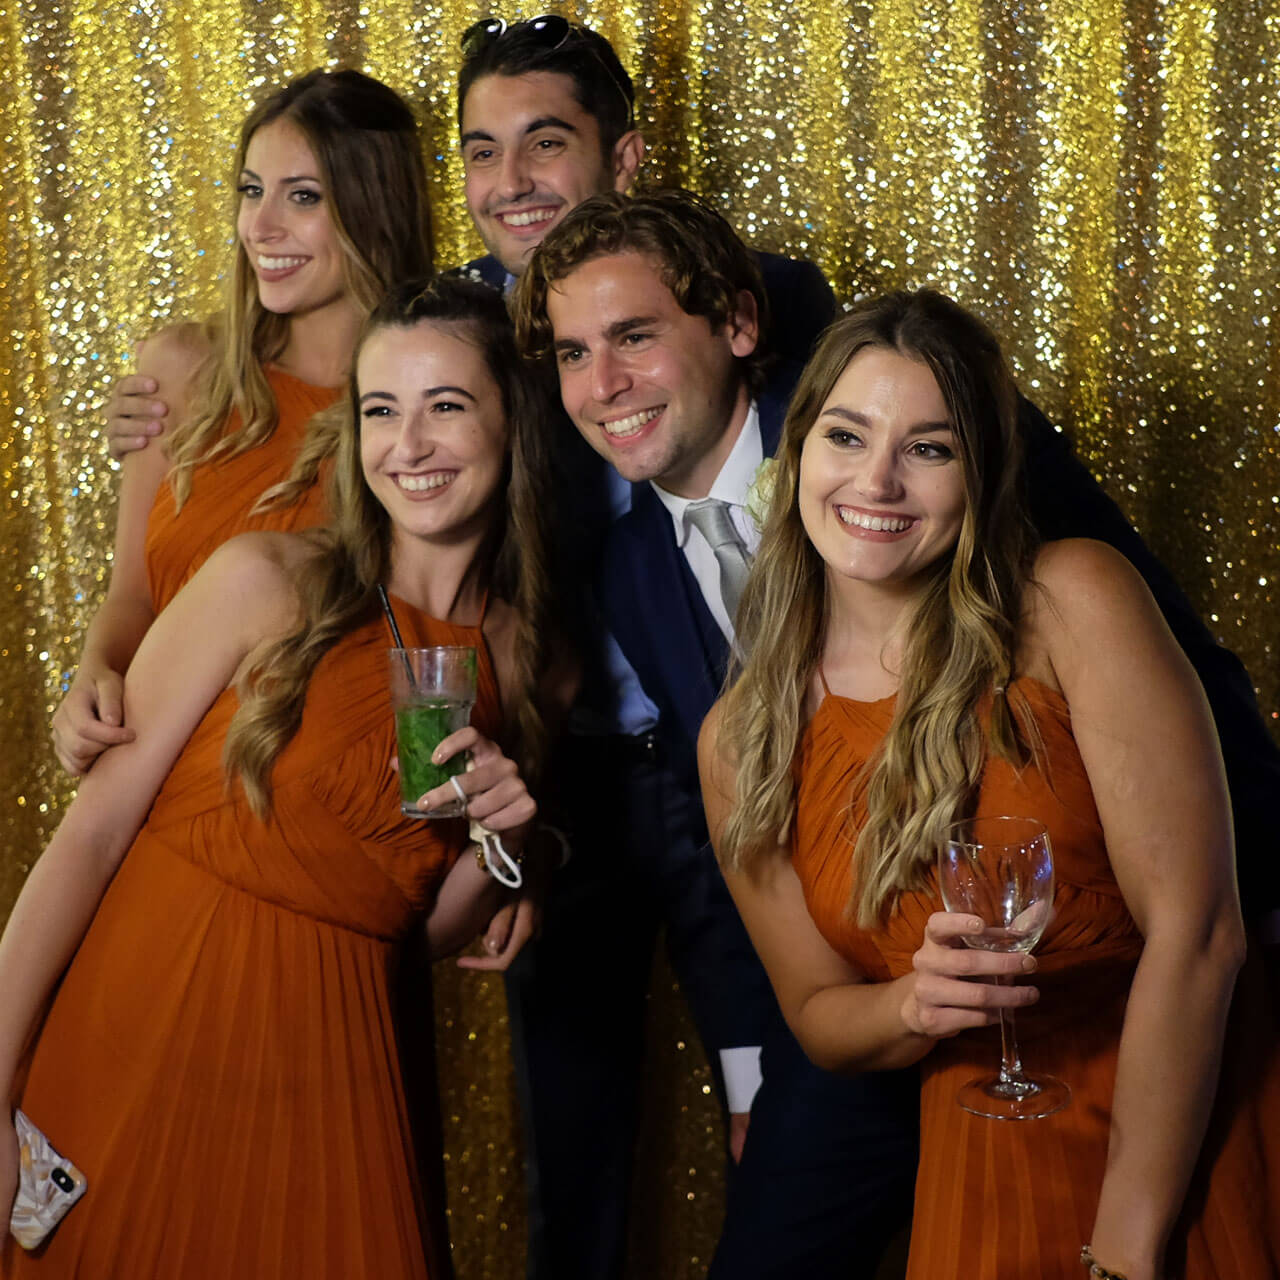 A lovely group of people posing in fornt of a gold glitter backdrop